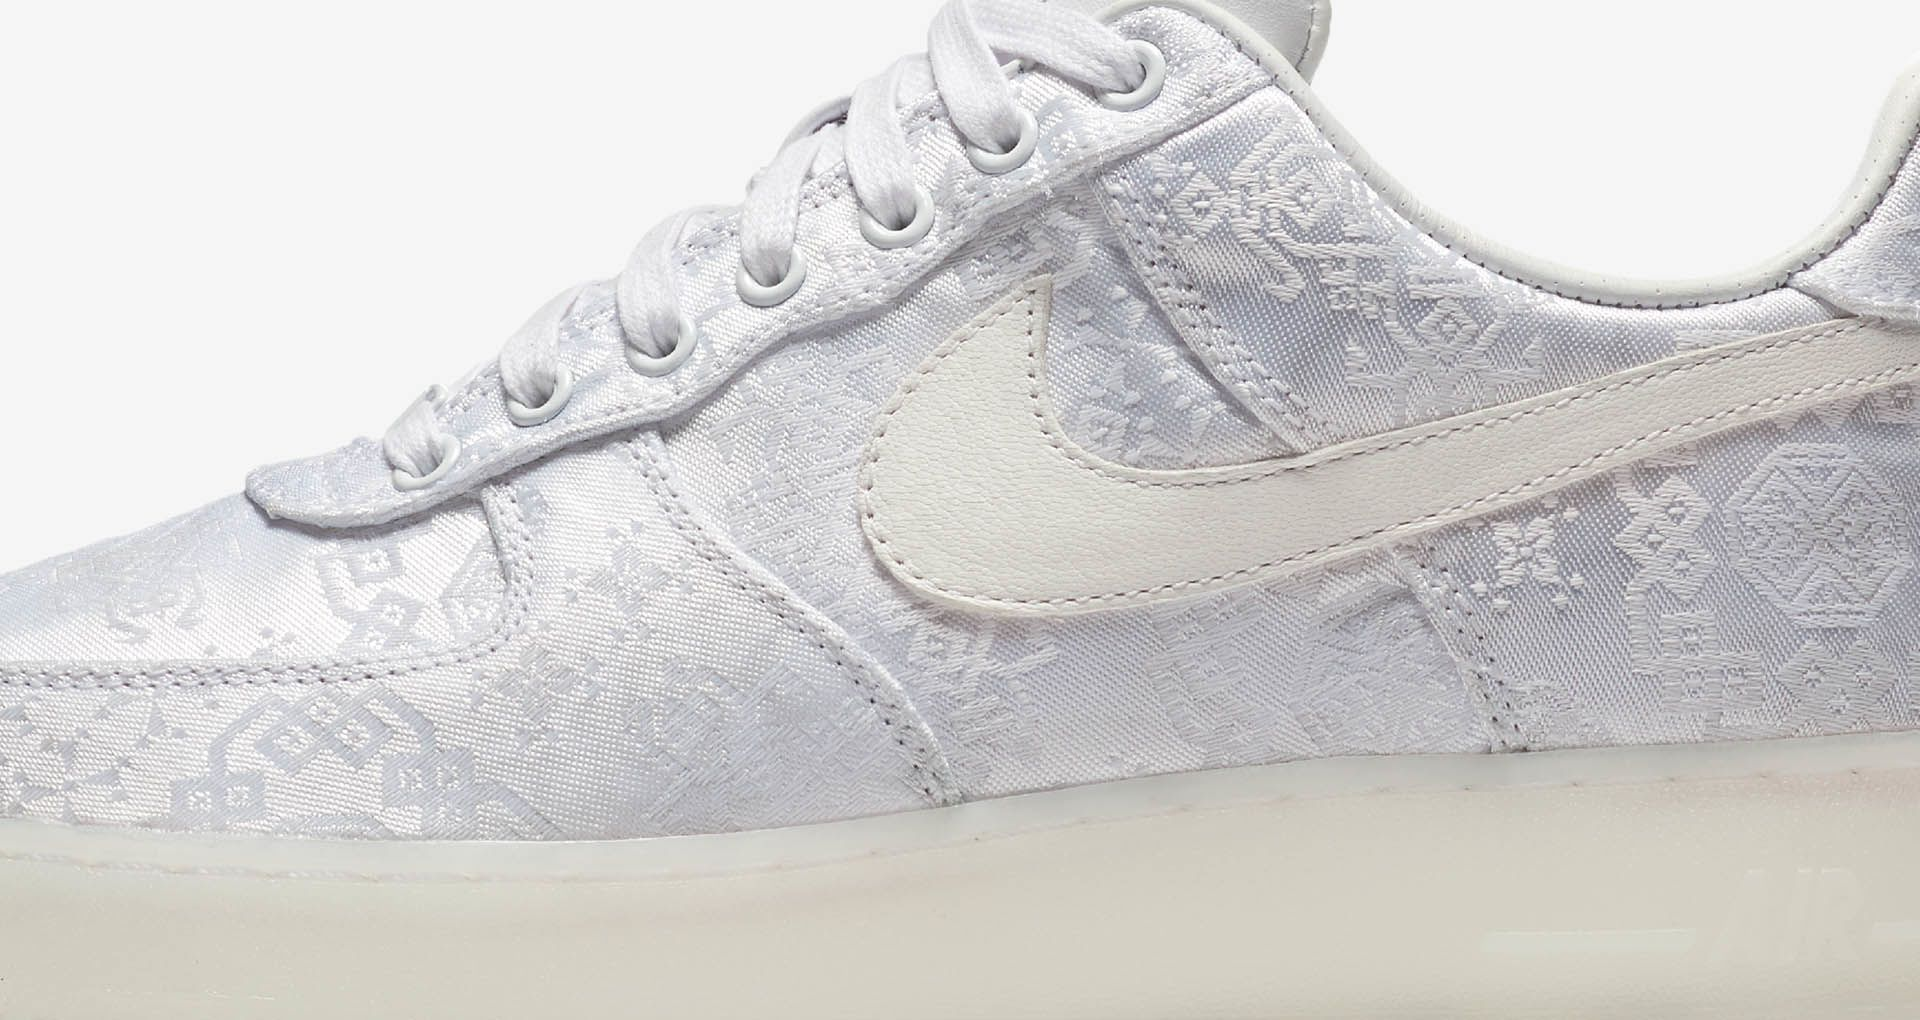 CLOT Drops Nike Air Force 1 Premium in White Silk | HYPEBAE